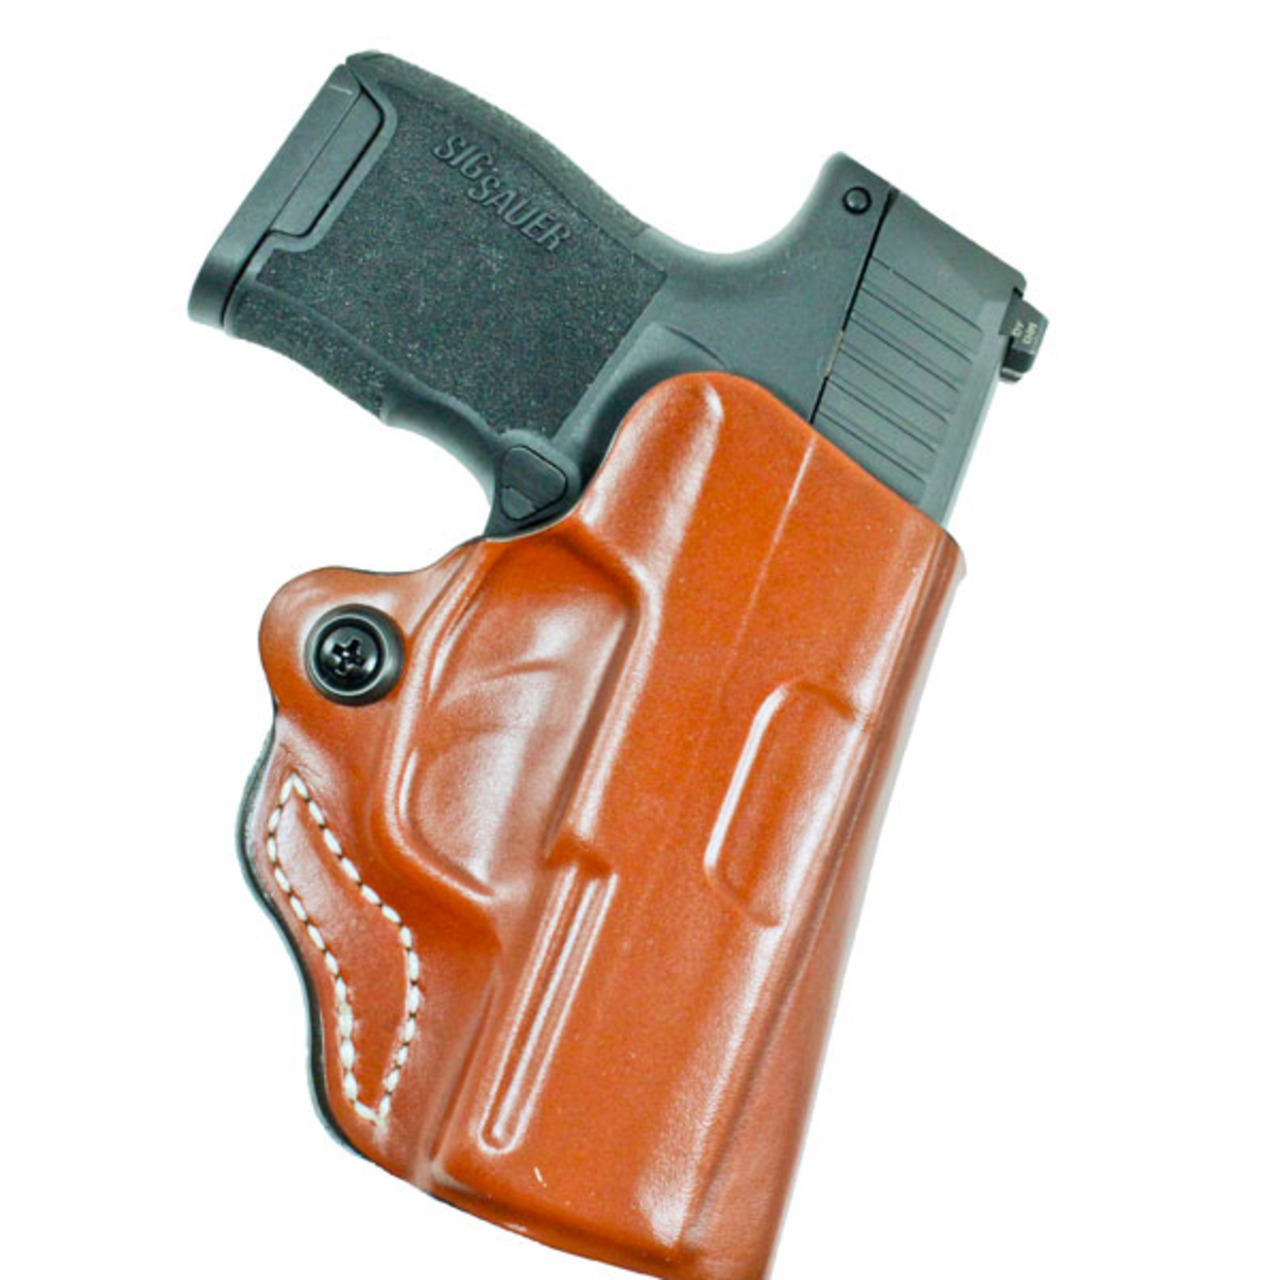 Holster Fits for the Sig Sauer P365